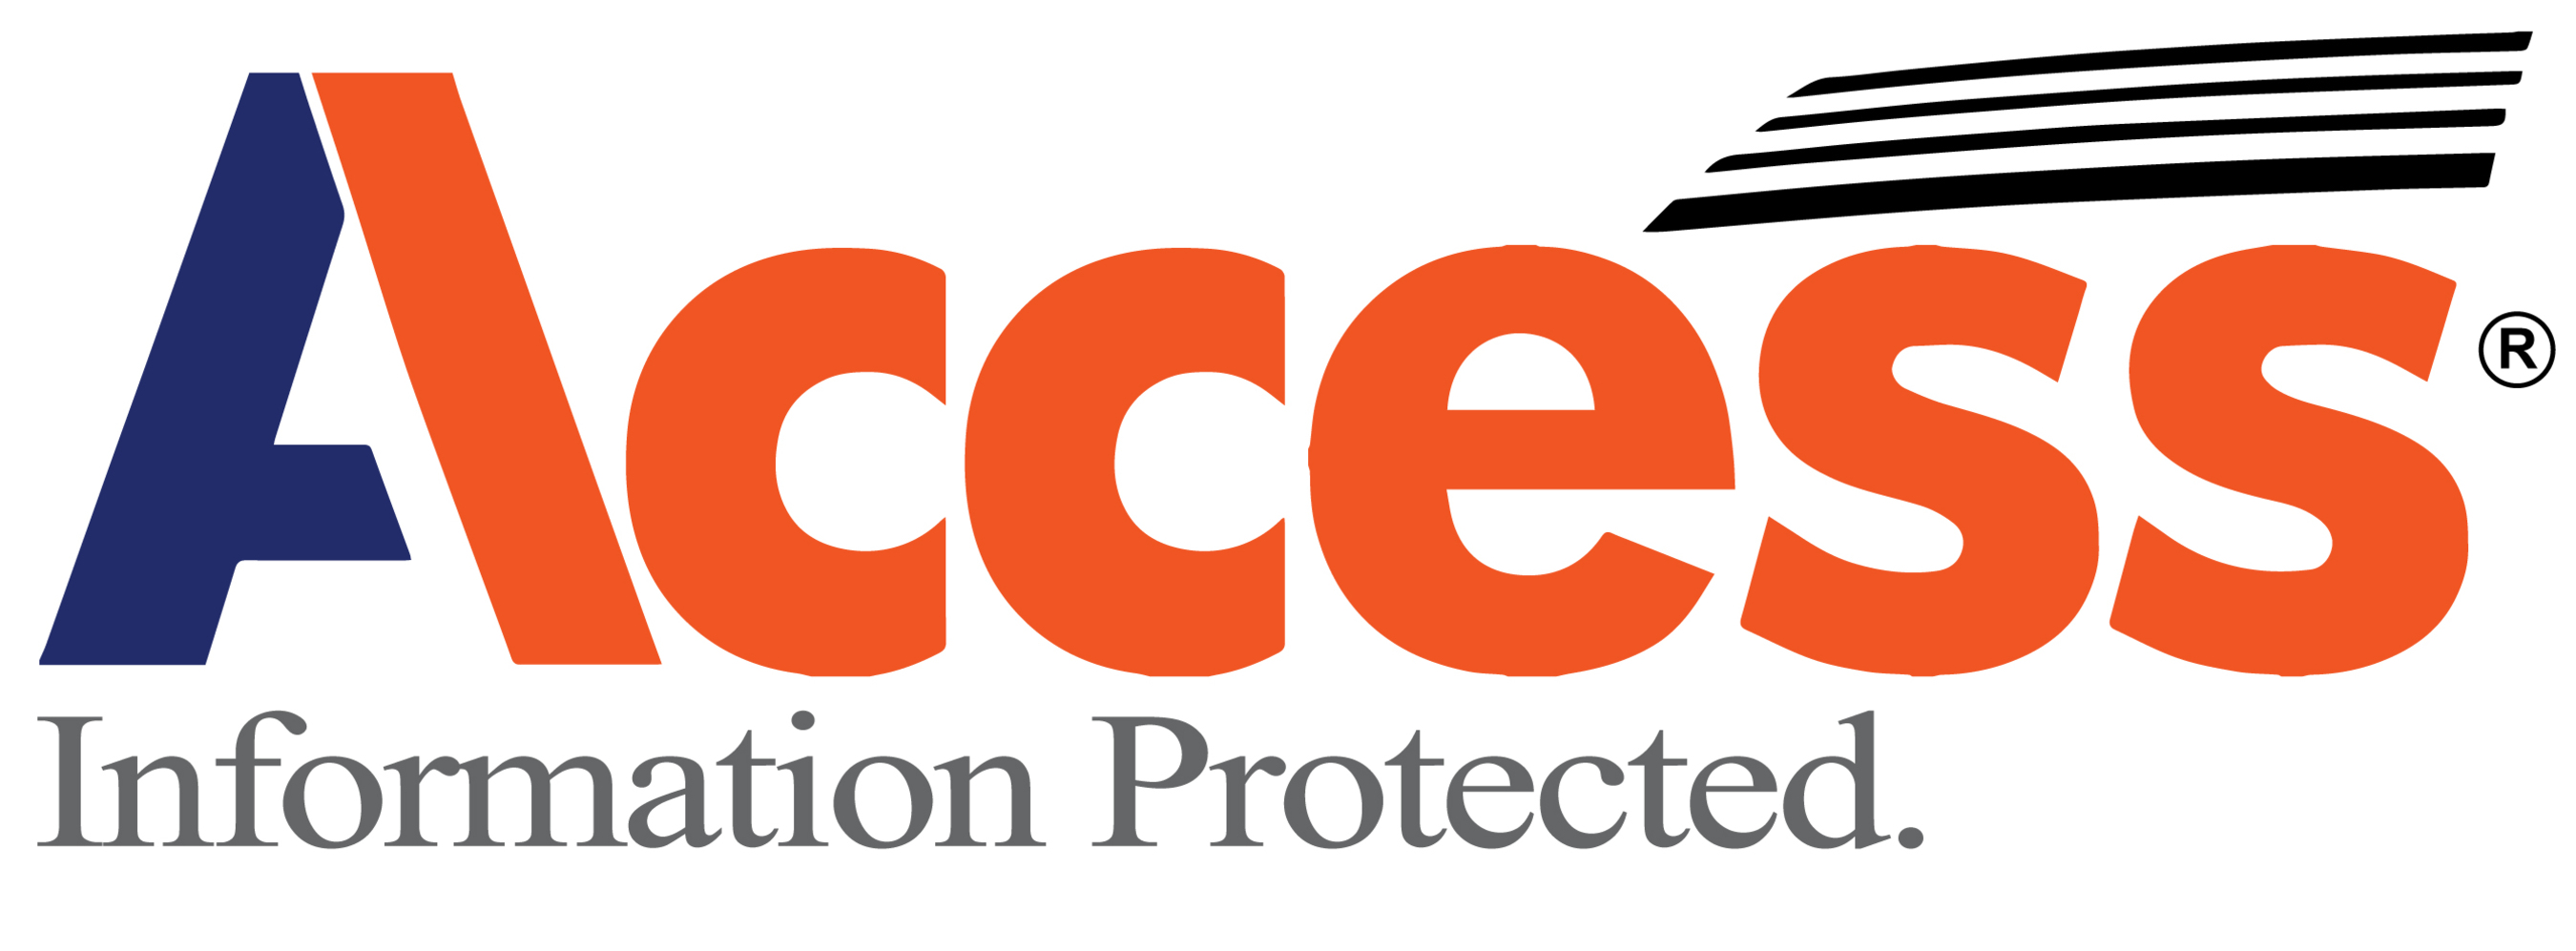 Access Announces Addition of Three Executives to Leadership Team